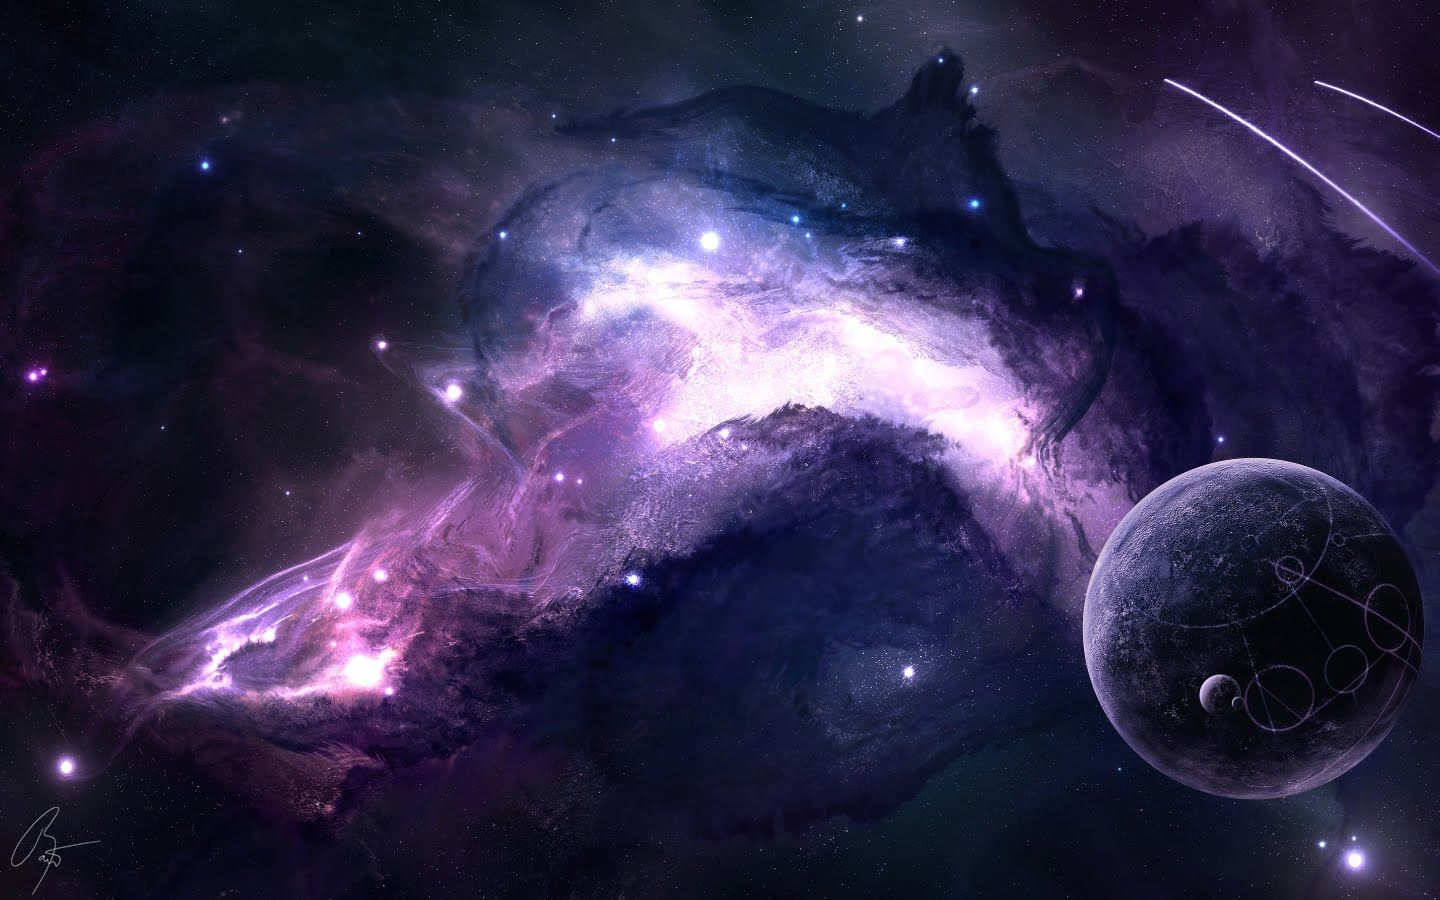 Galaxy Space Live Wallpapers Hd By Narendra Doriya: HD Space Wallpaper [1080p+]